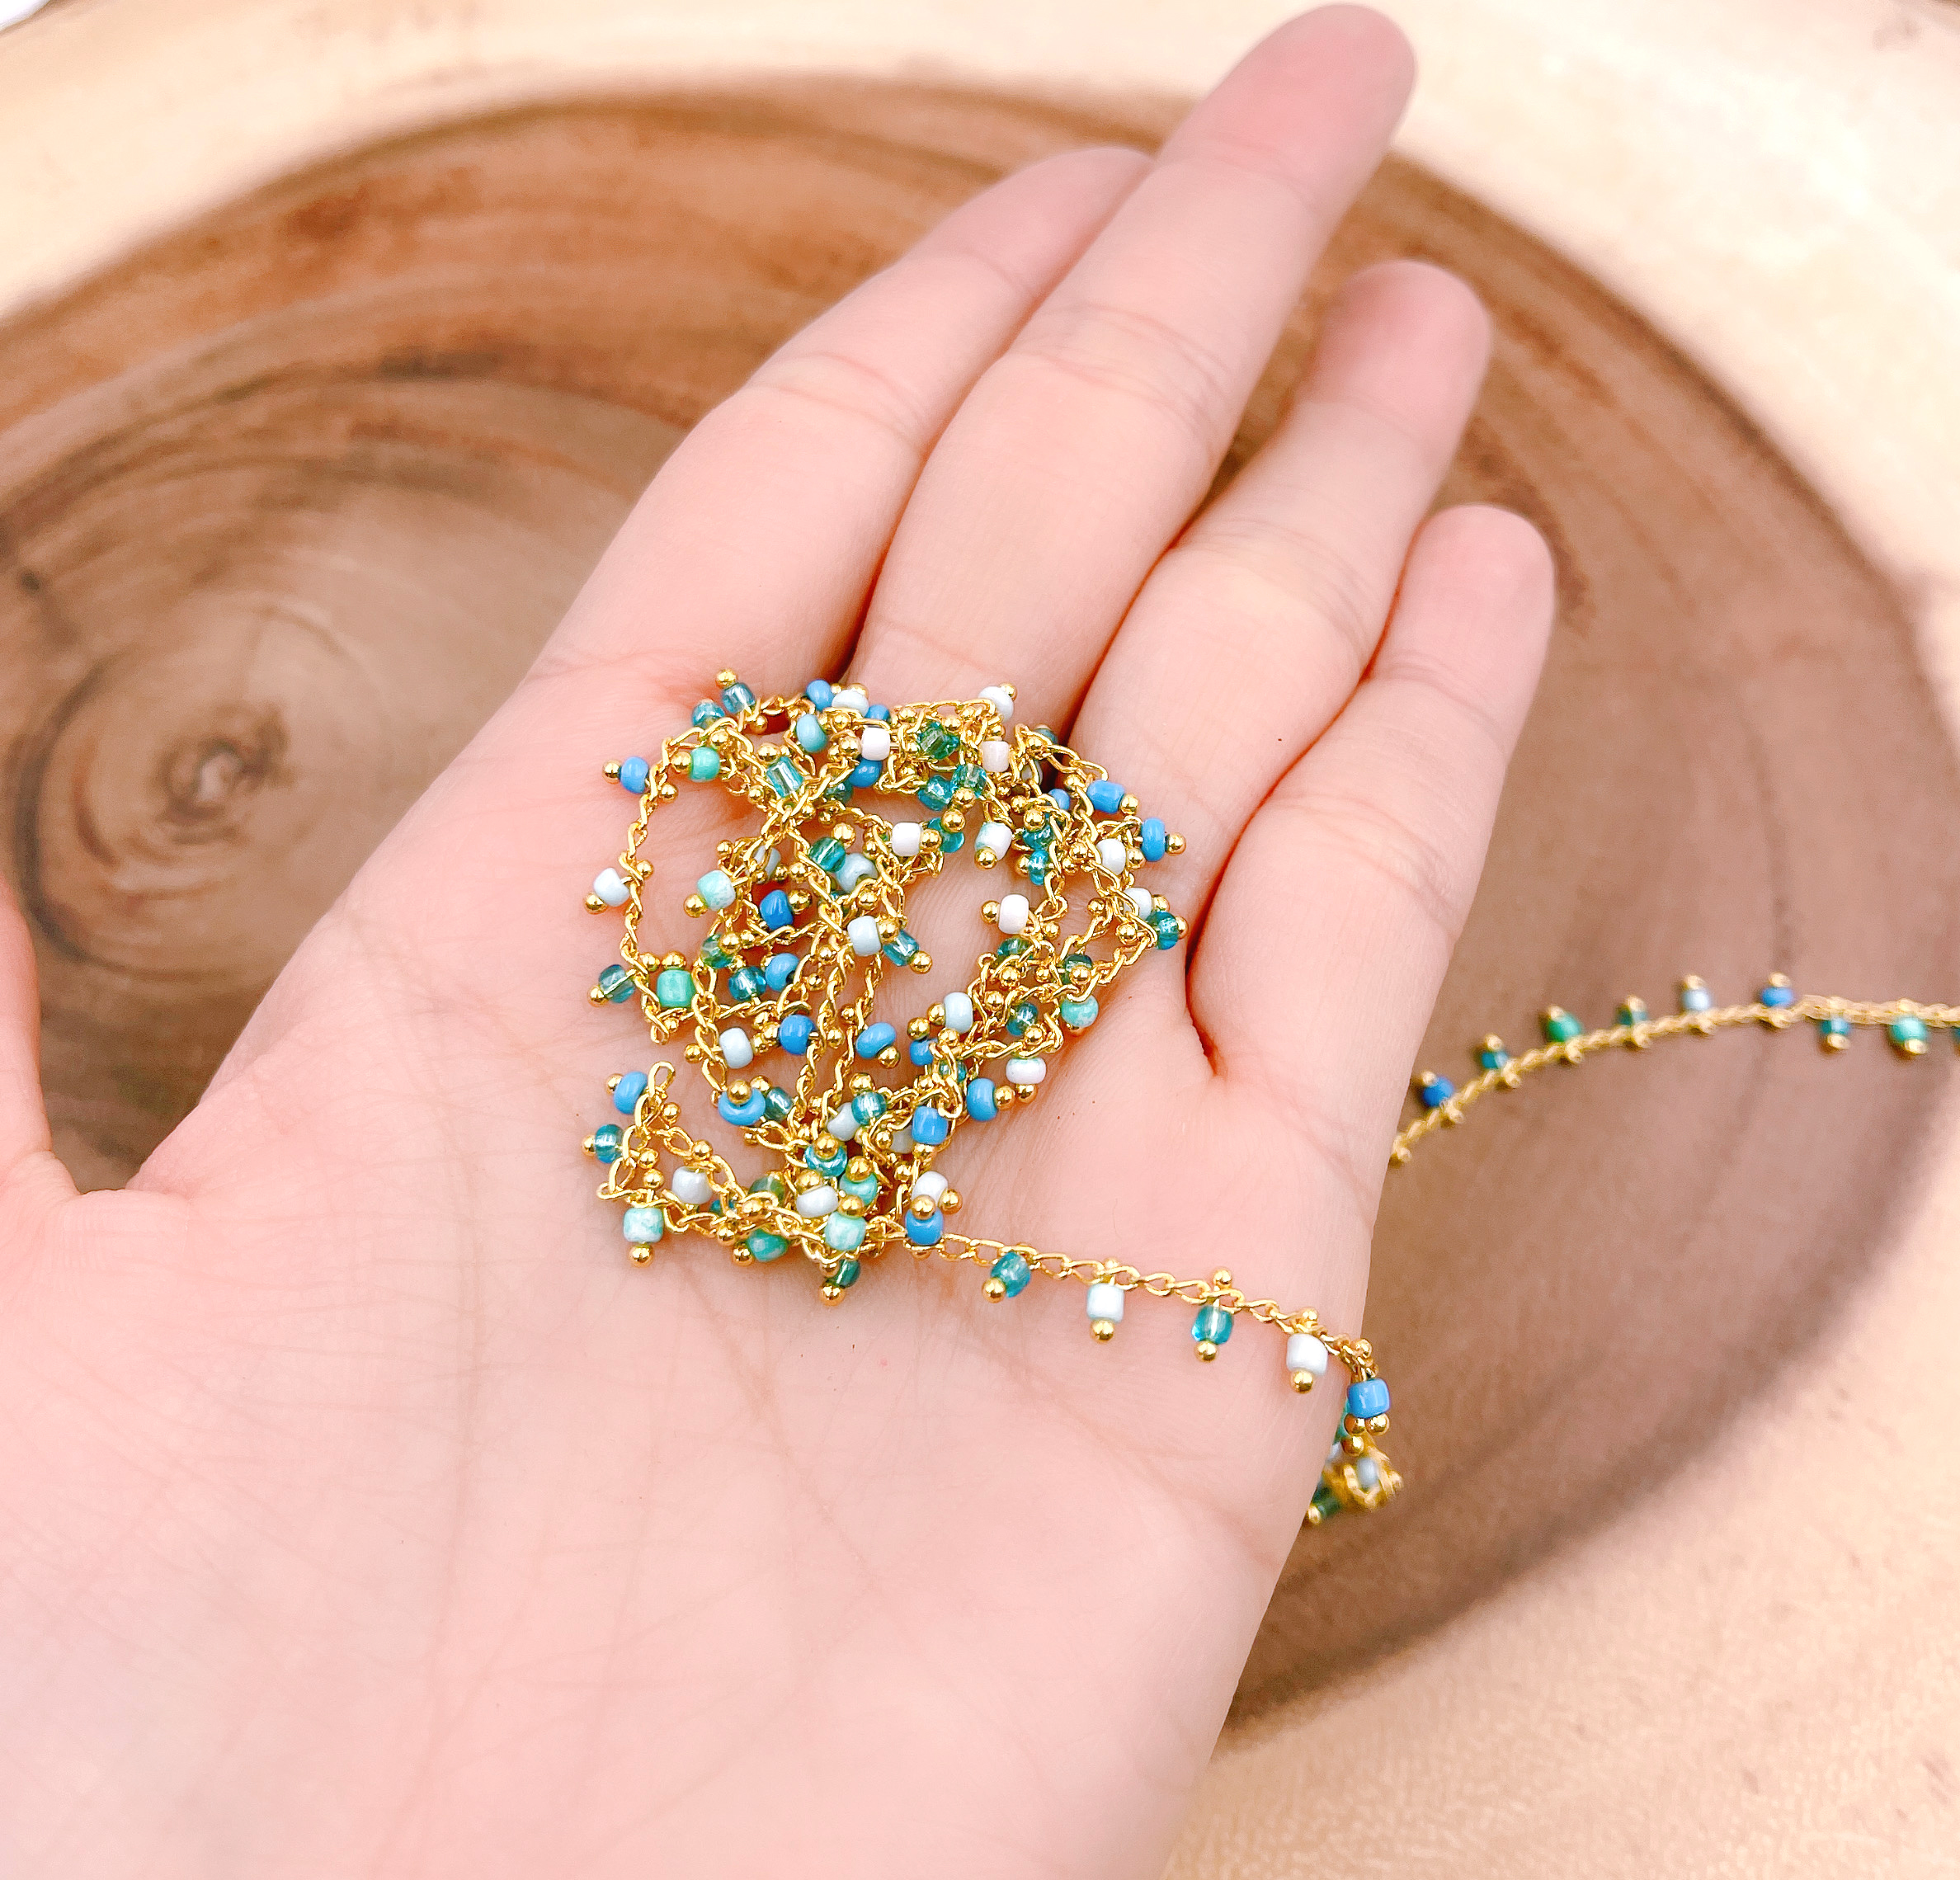 18k Shiny Gold Plated Chain Blue Beaded Chains  Beaded Bracelet Chain  Beaded Charms  Beaded Chain Wholesale for Jewelry Making